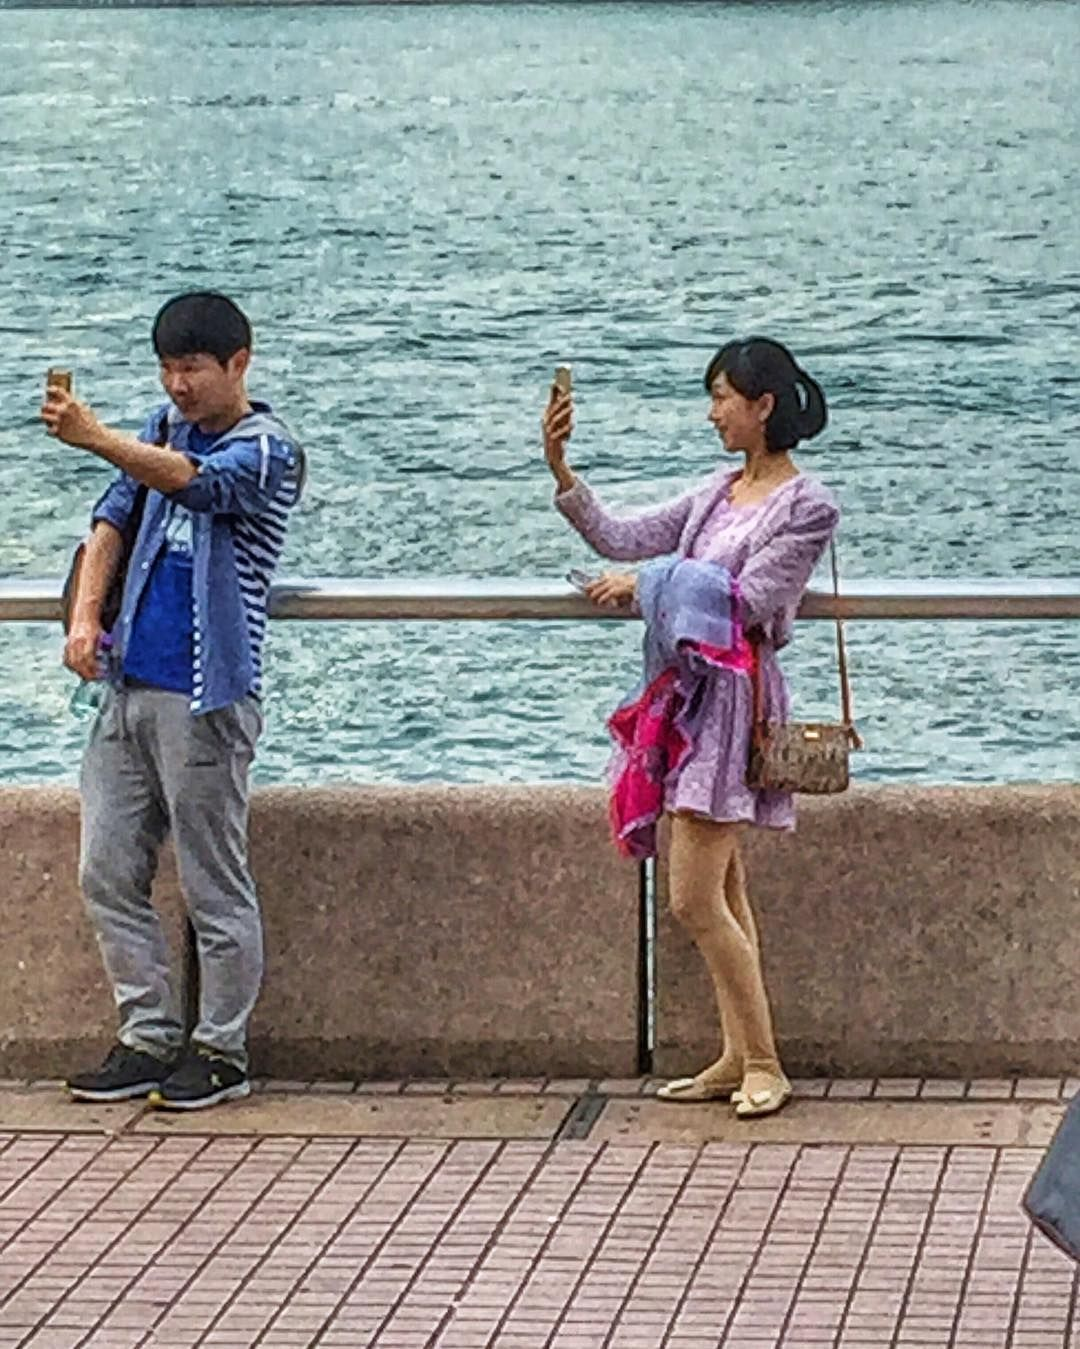 More selfie time on the pier...this time individual shots!